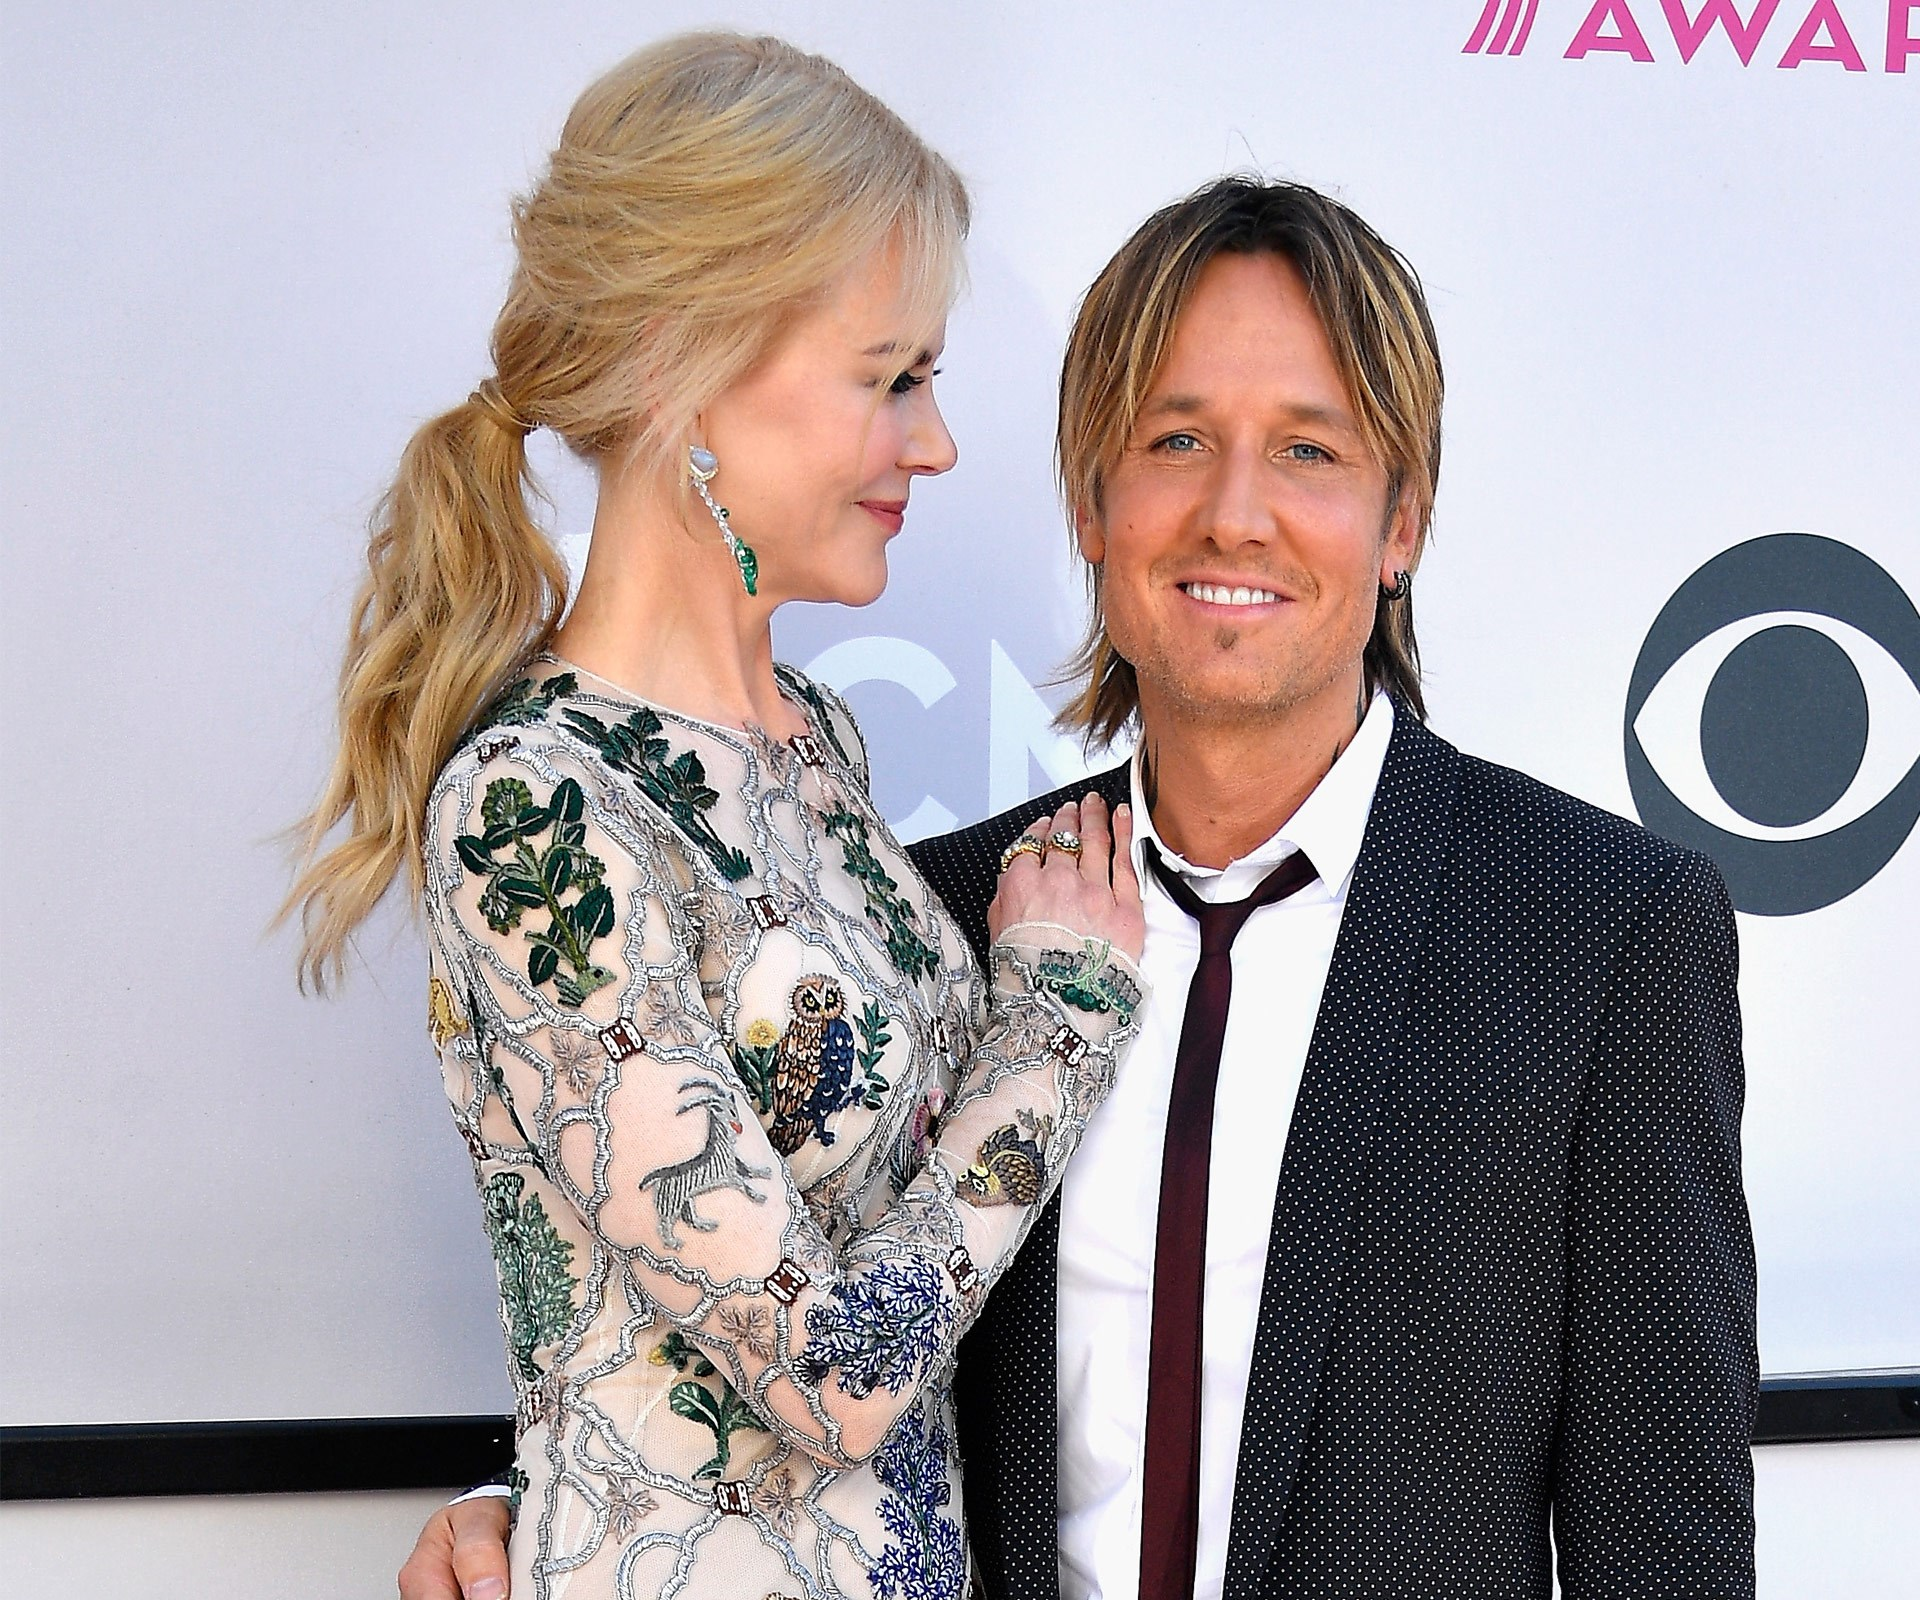 Joined by his leading lady Nicole Kidman, Keith Urban is up for a big night at the Academy of Country Music Awards.